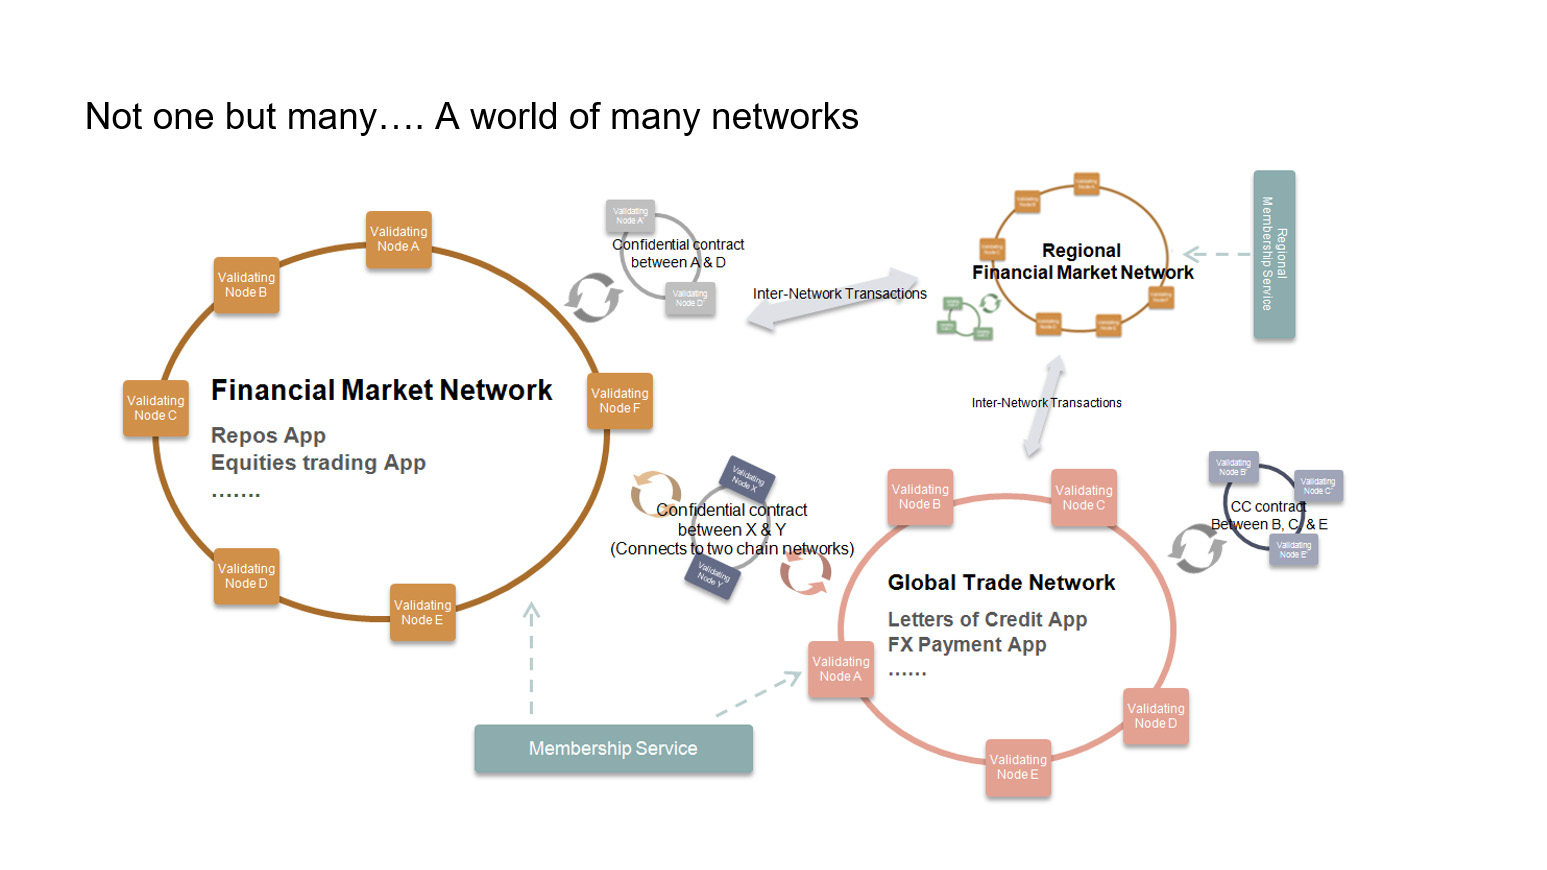 Hyperledger Ethereum world of many networks